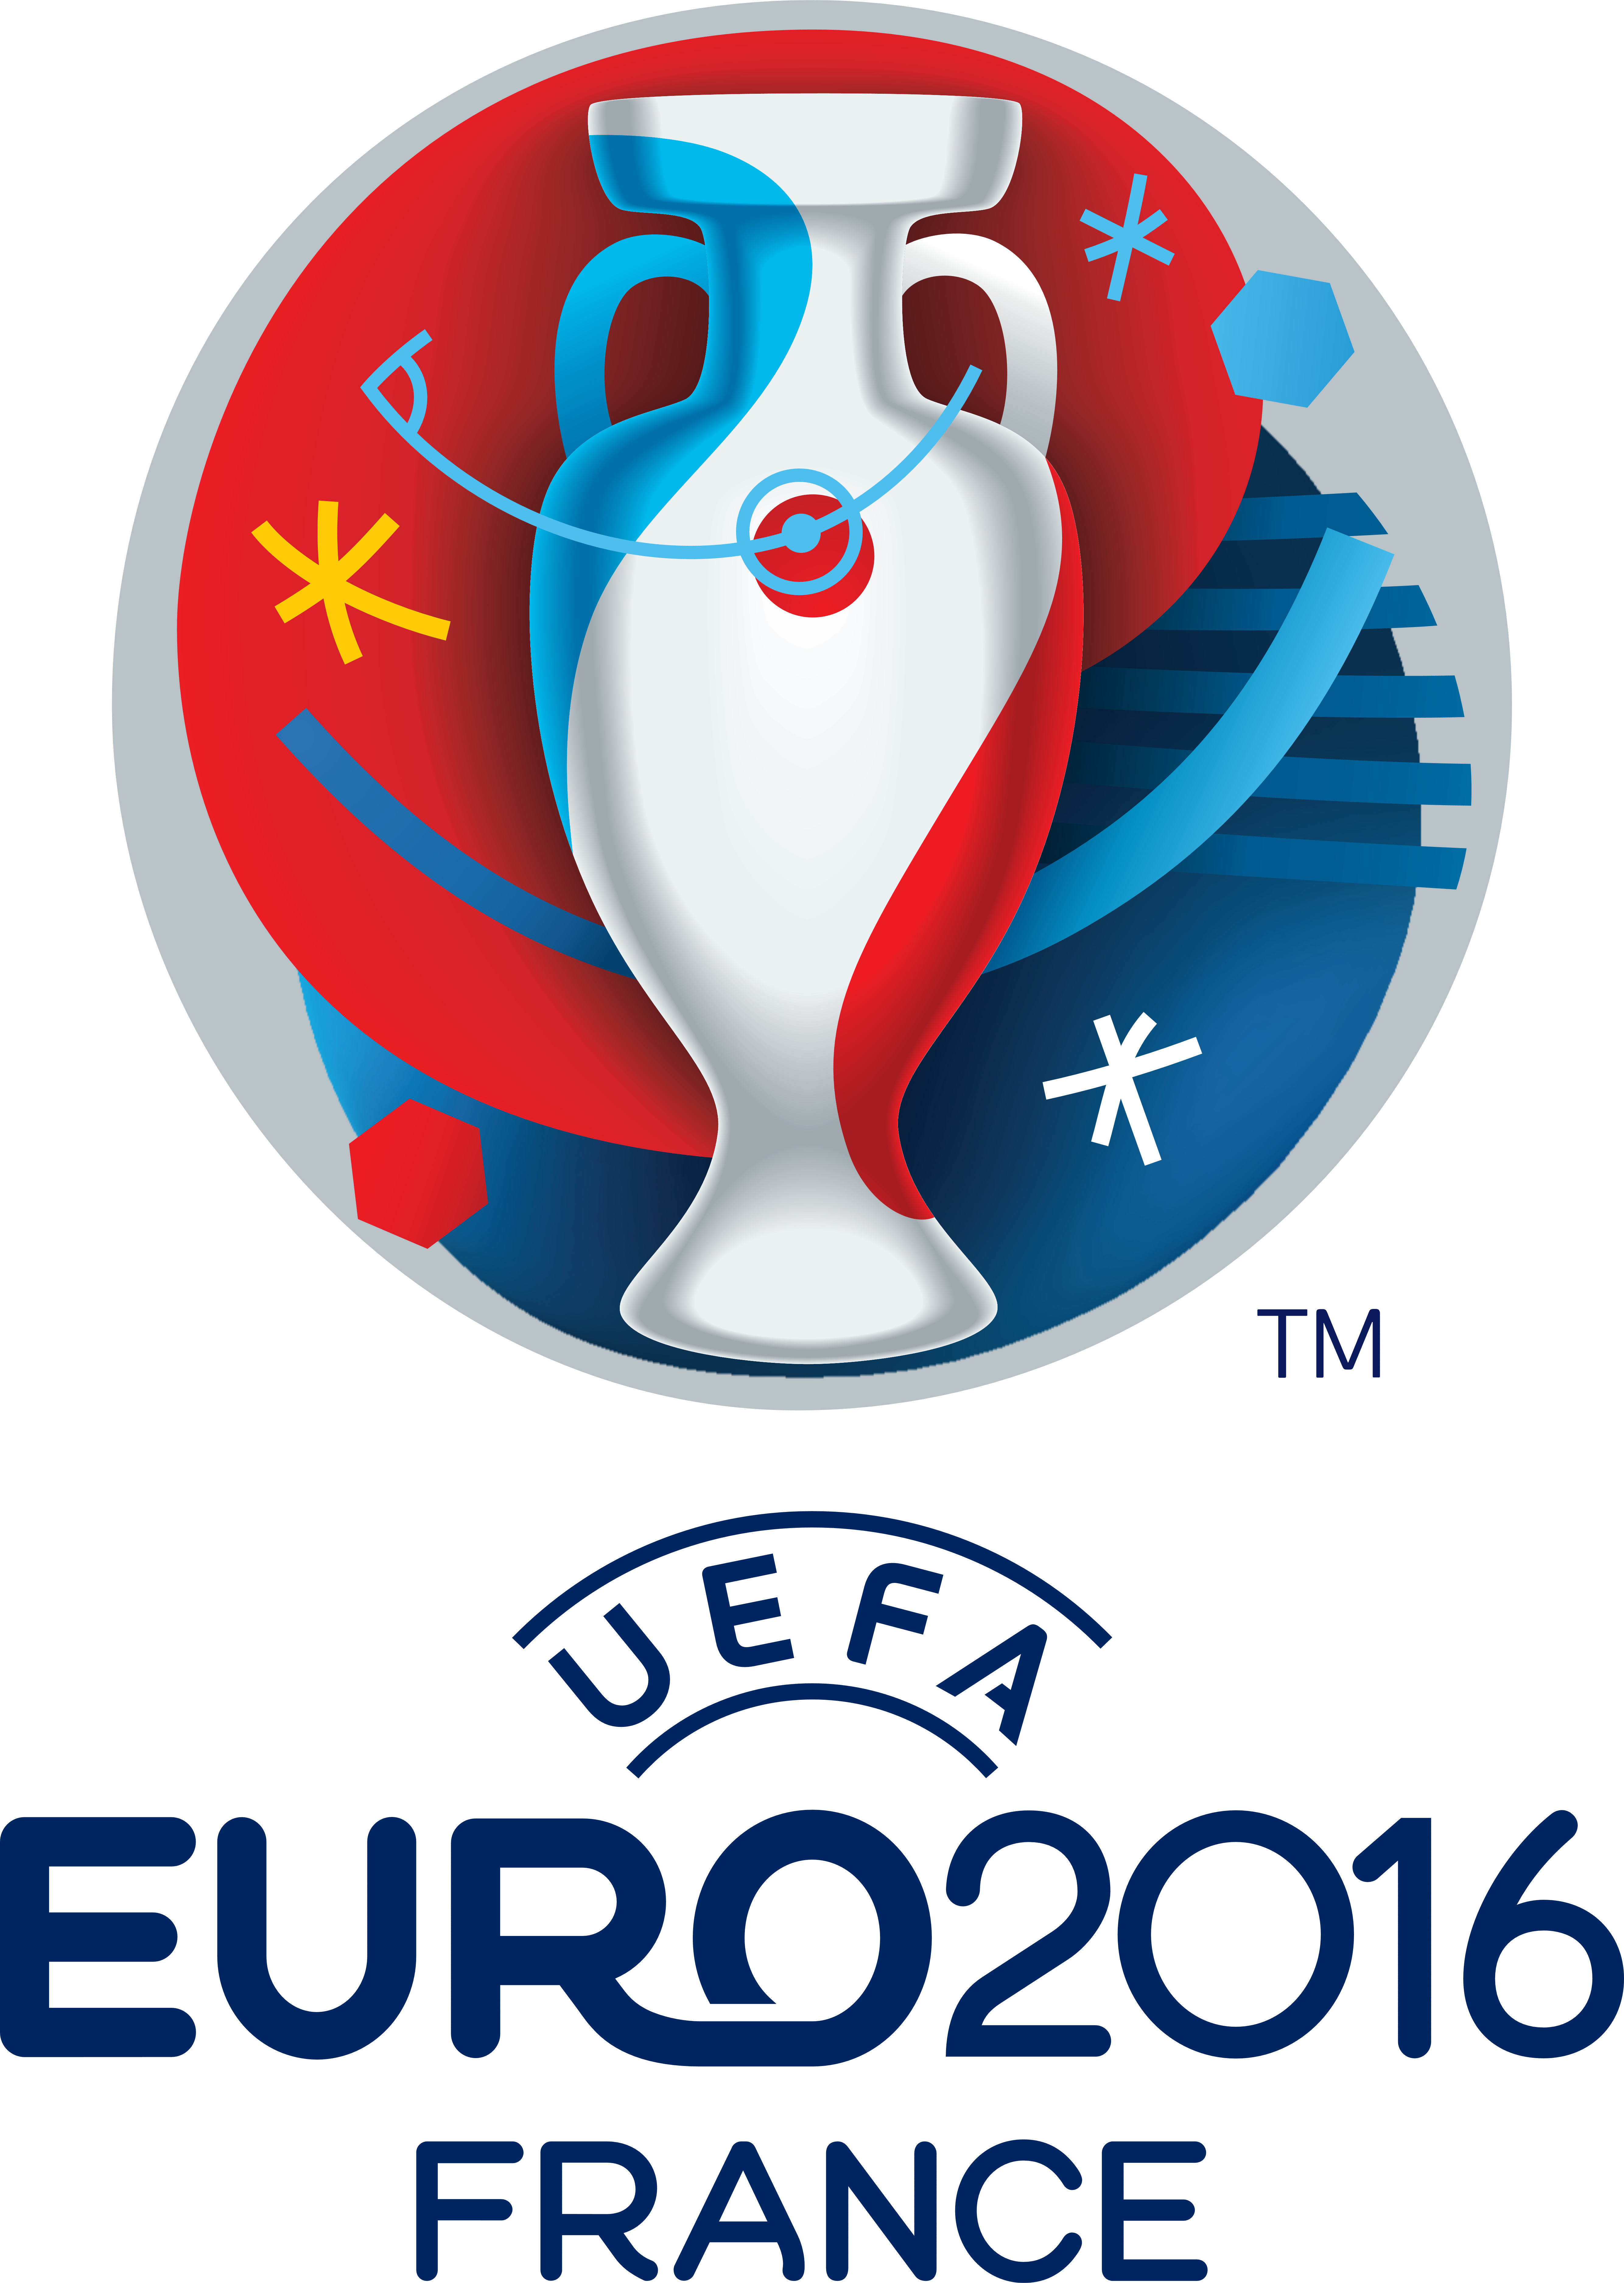 euro 2016 logo france uefa european football championship logos download logos download